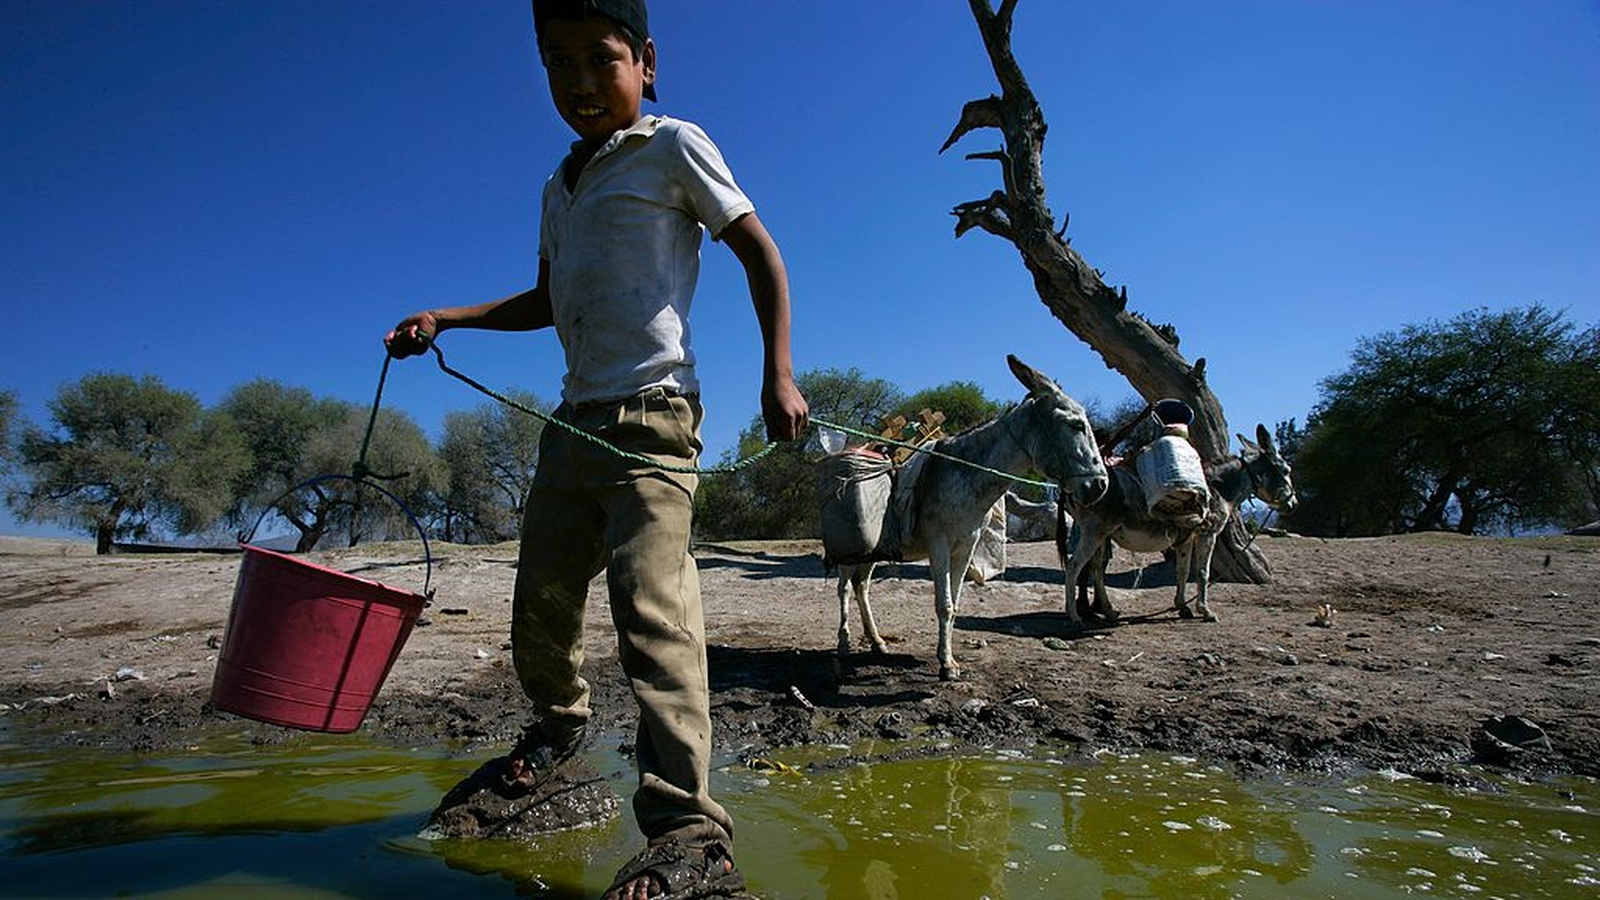 2 billion people drinking contaminated water - WHO